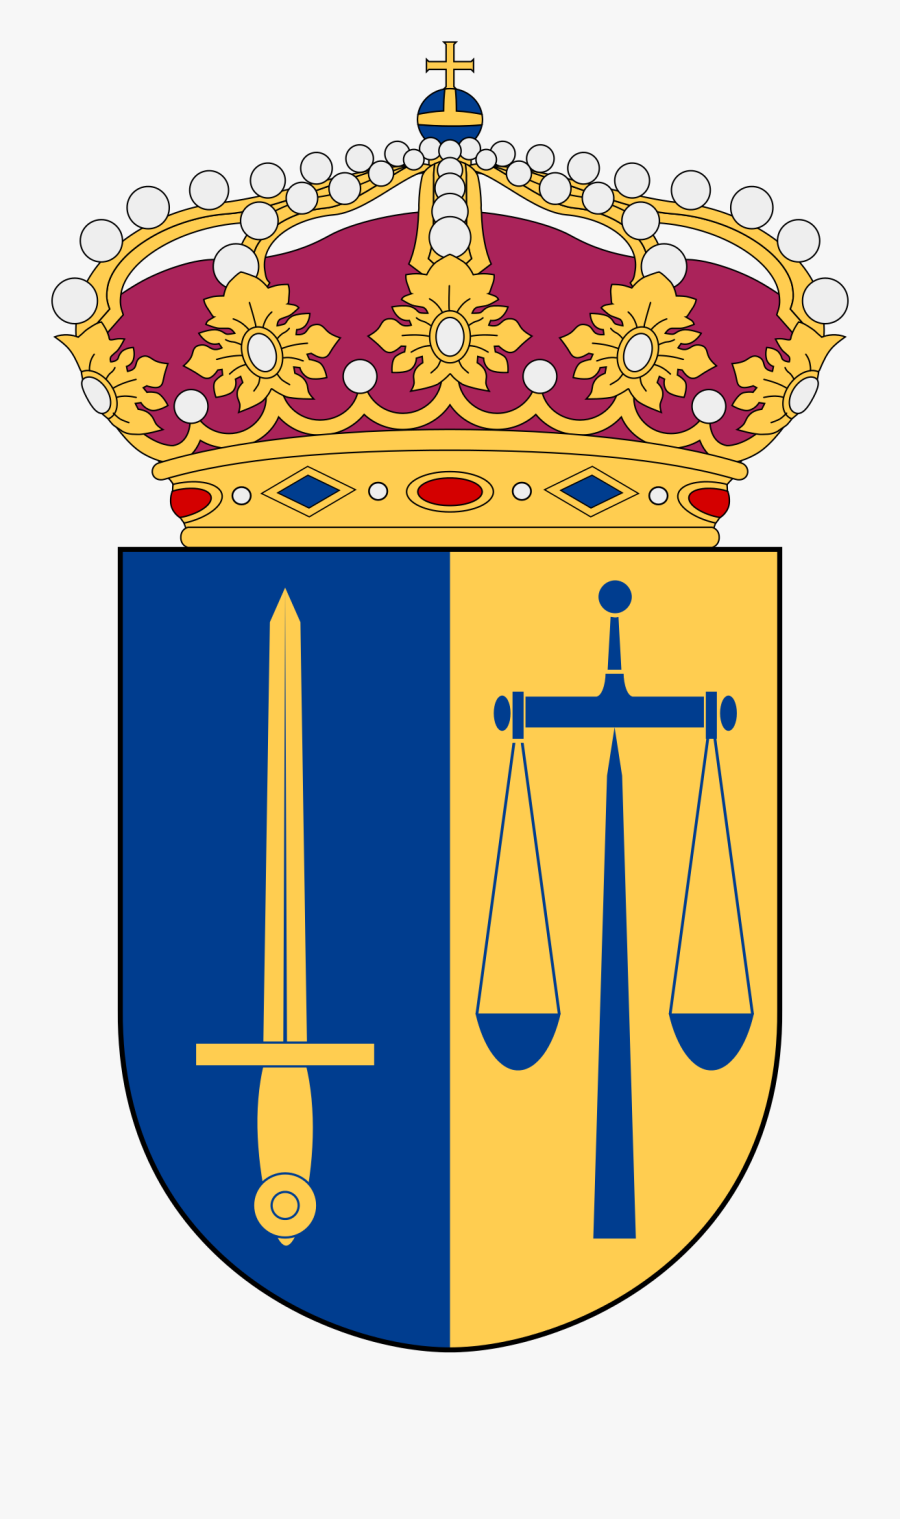 Scales Of Justice In Heraldry - National Defence Radio Establishment, Transparent Clipart